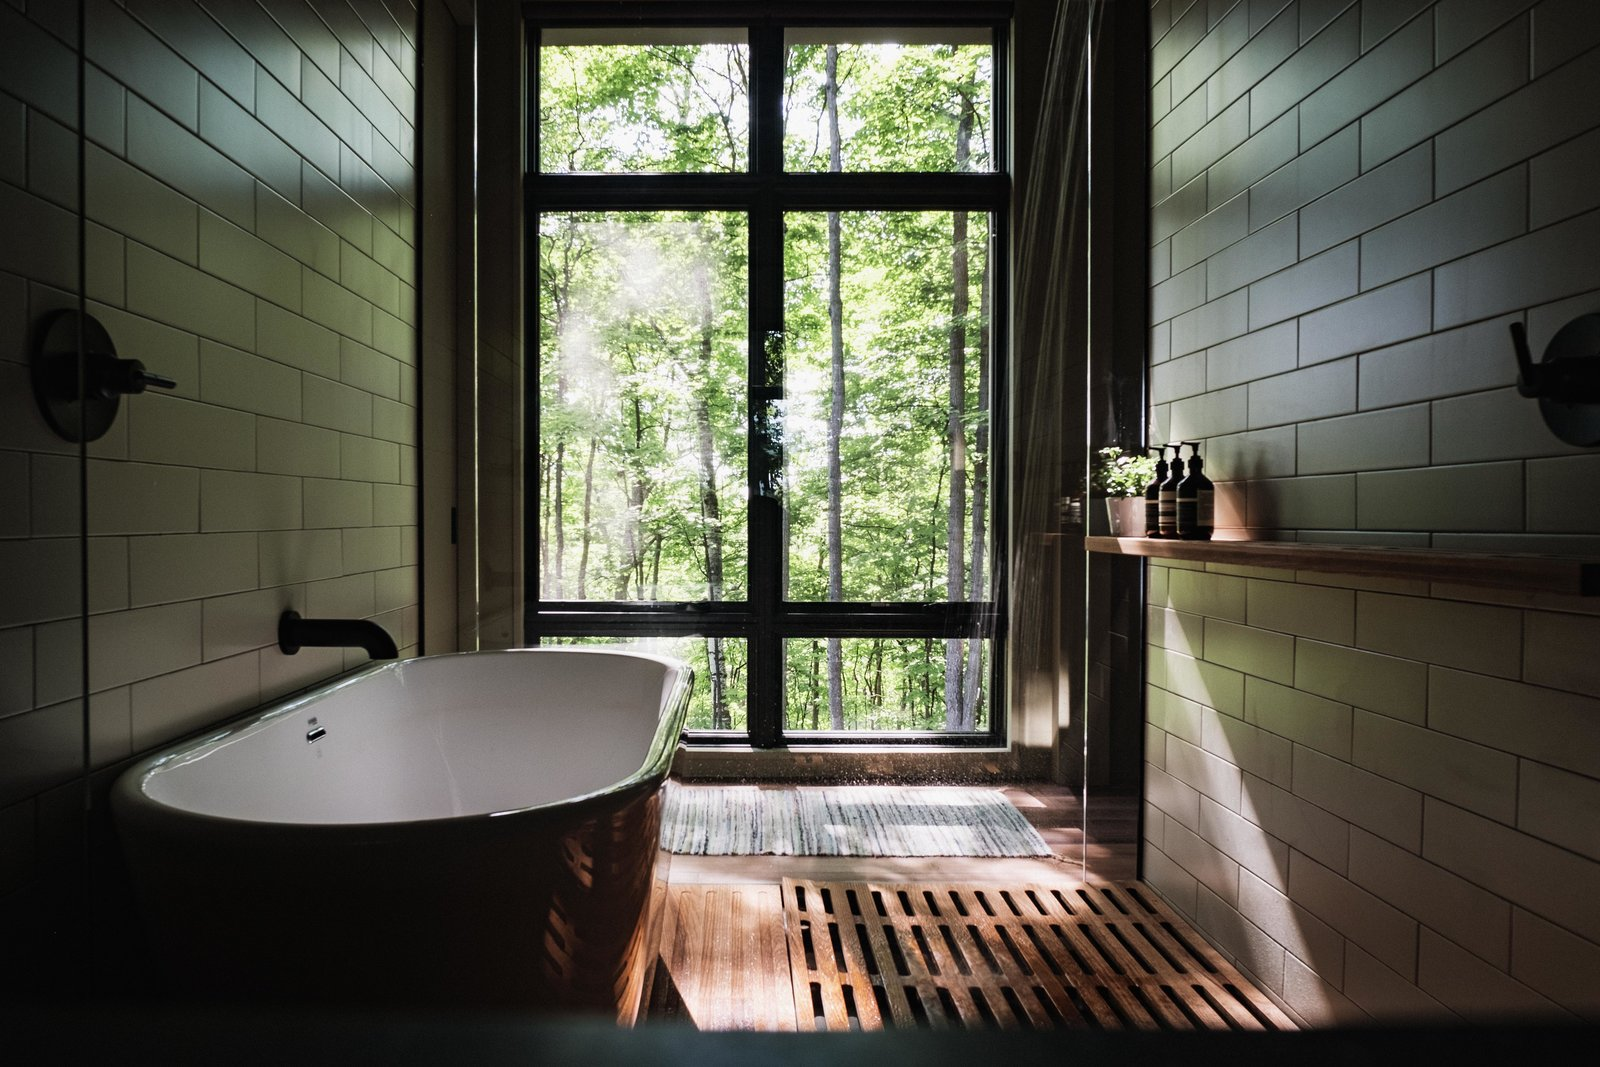 Bath, Pendant, Undermount, Soaking, Medium Hardwood, Two Piece, Open, Ceiling, Freestanding, and Subway Tile Master bath wet room with views of trees.  Bath Two Piece Freestanding Open Photos from Birch Le Collaboration House